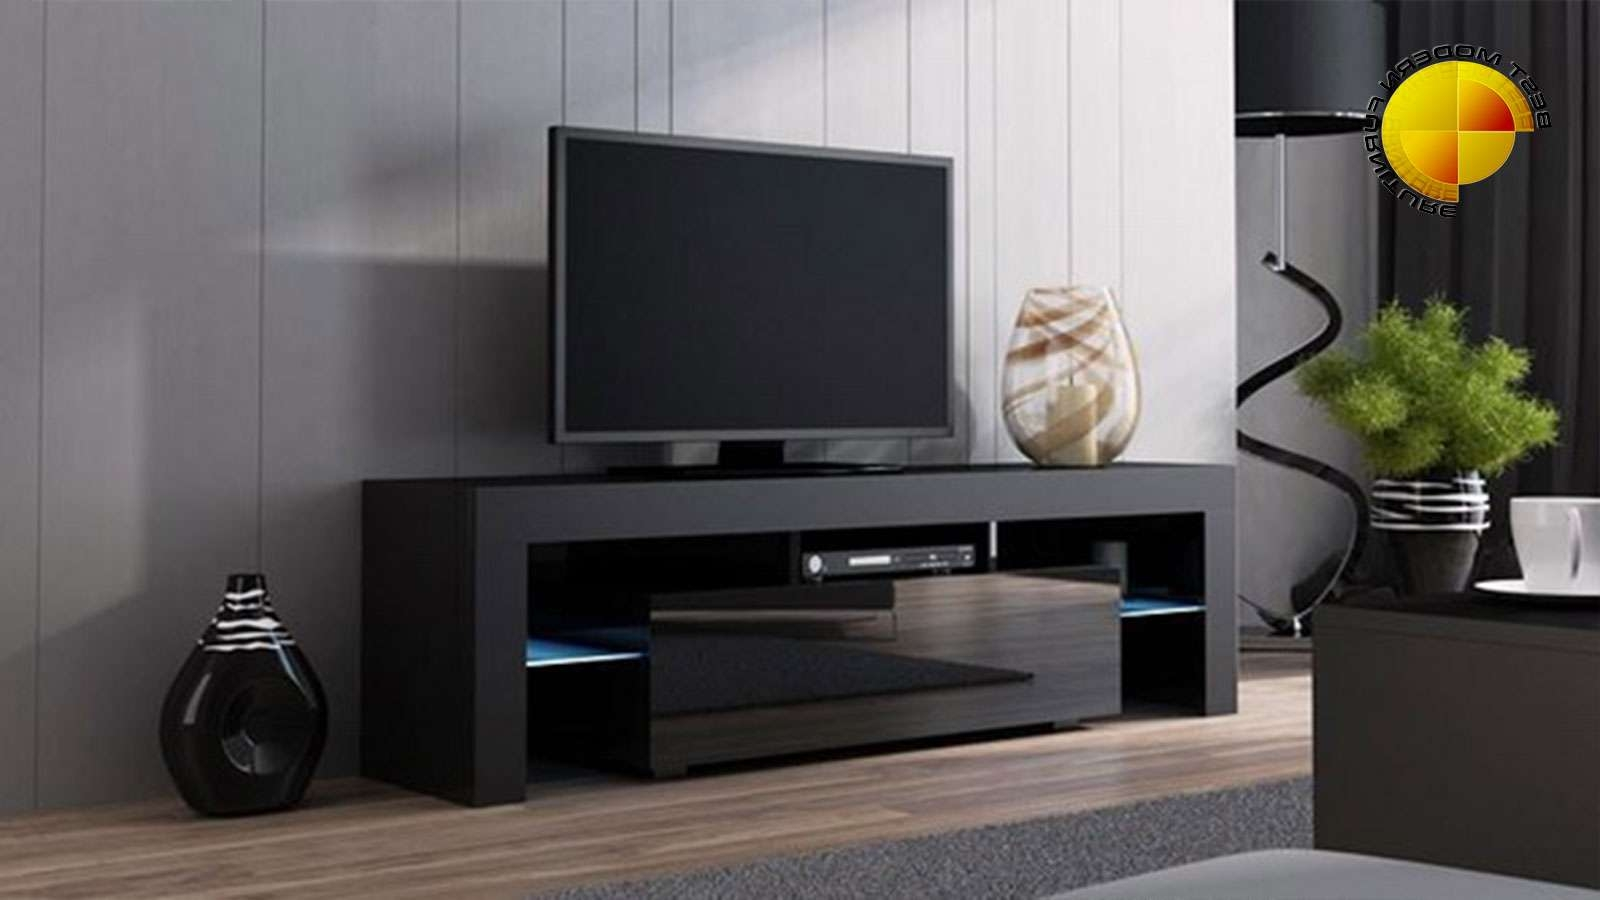 Modern Tv Stand 160Cm High Gloss Cabinet Rgb Led Lights Black Unit Pertaining To Modern Tv Cabinets (View 18 of 20)